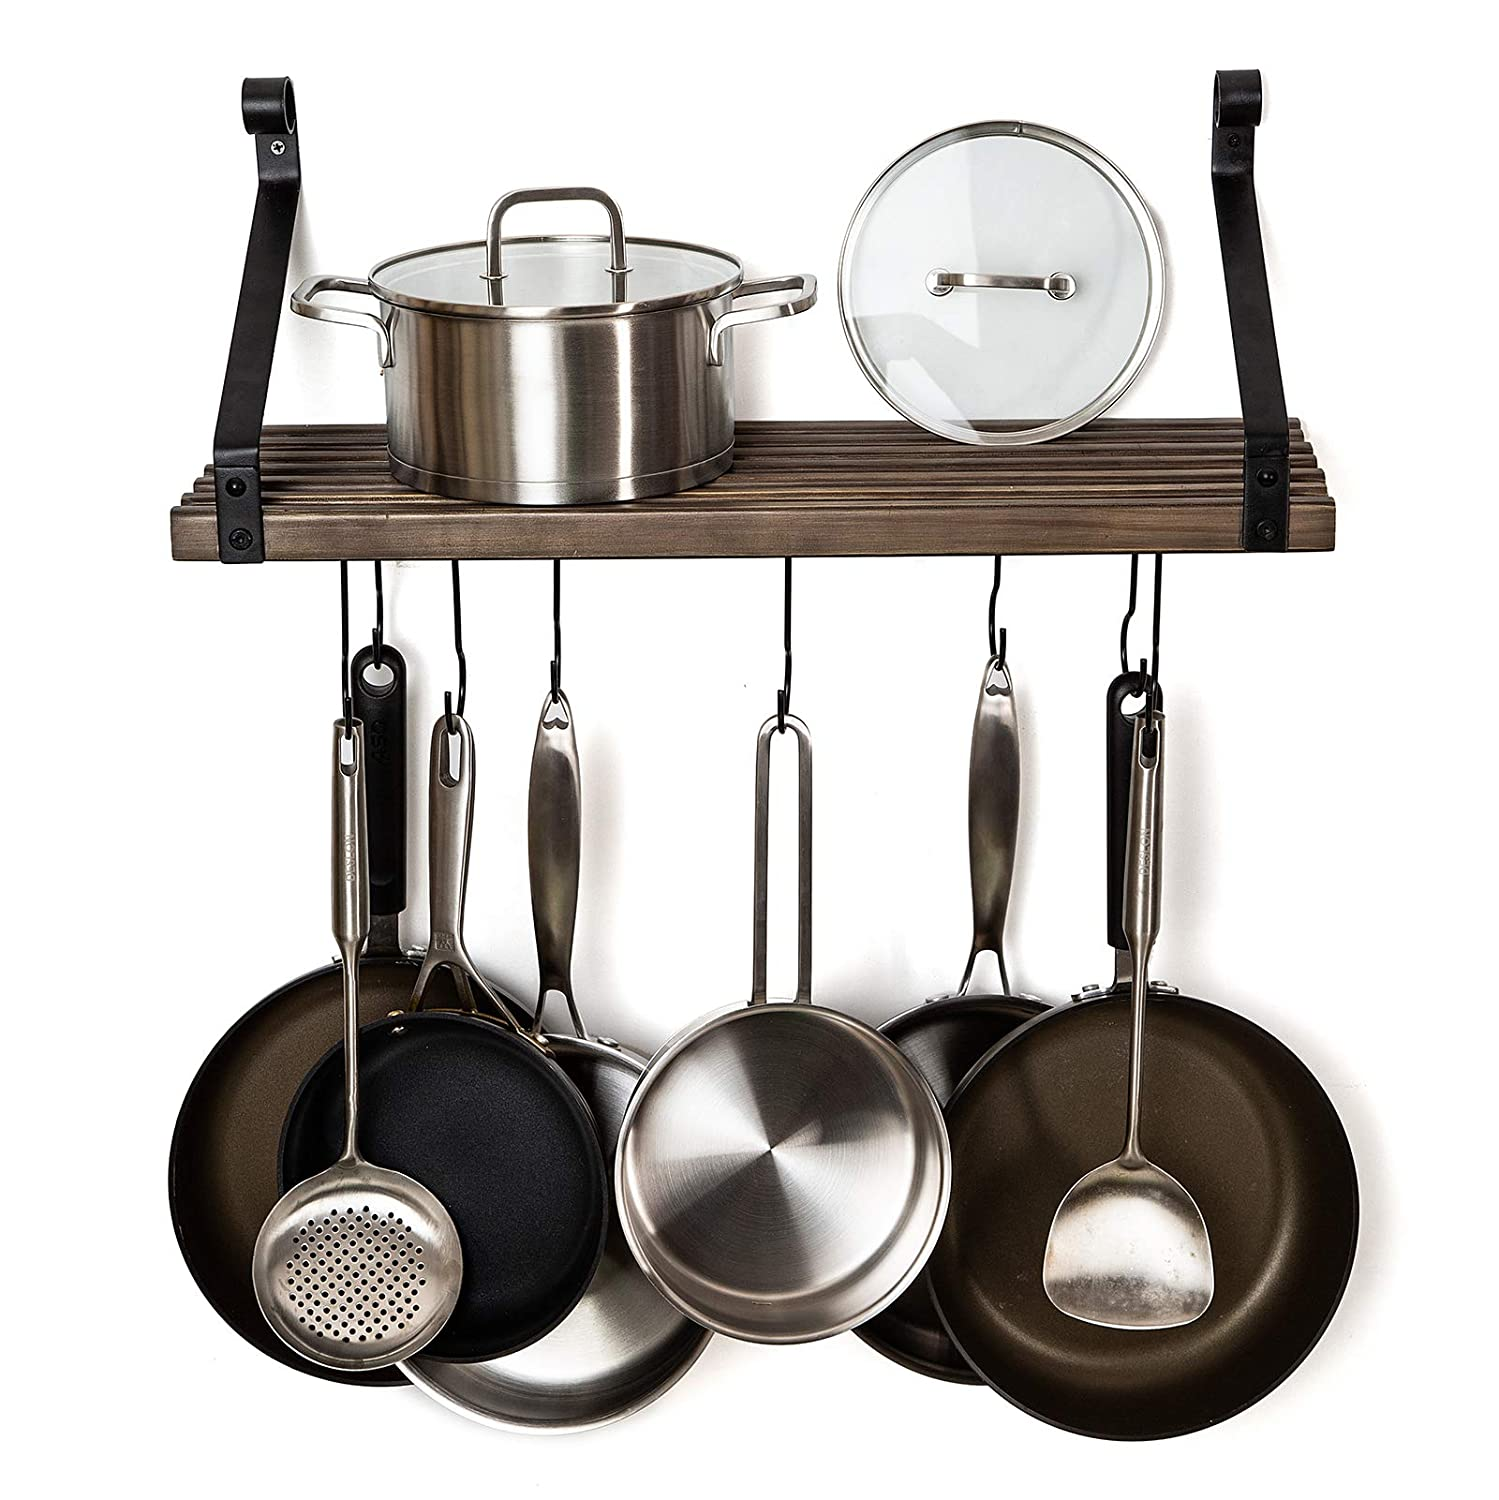 Soduku Pot Pan Rack with Solid Wood Shelf, Wall Mounted Multifunctional Kitchen Hanging Organizer with 8 Hooks for Pots Pans Lids Utensils Cookware Brown